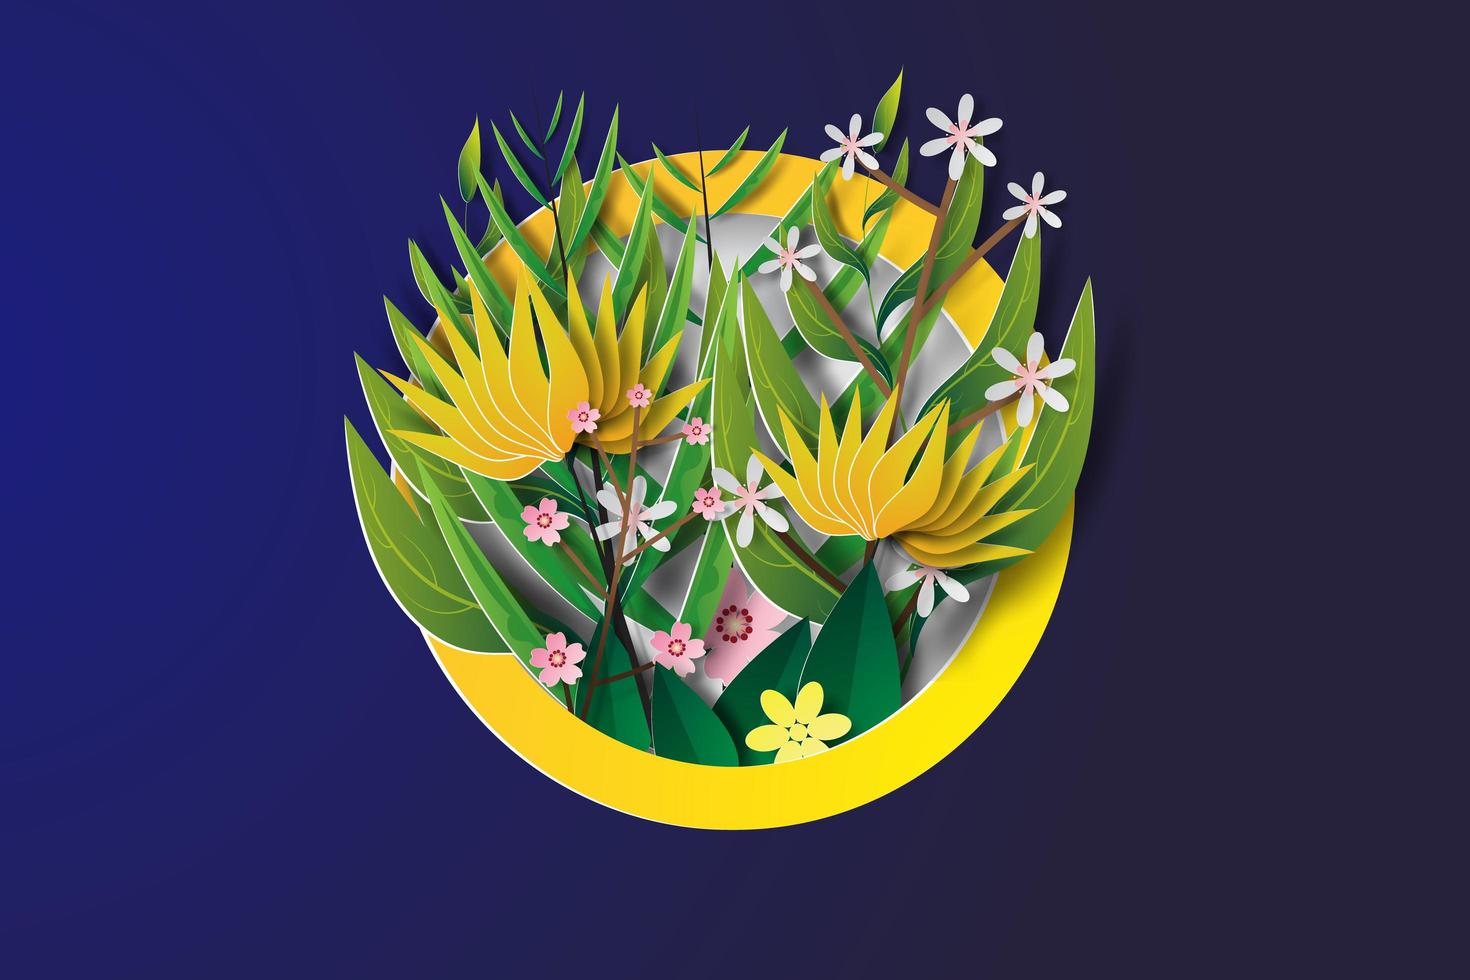 Paper Art of Flower Collage in Circle  vector